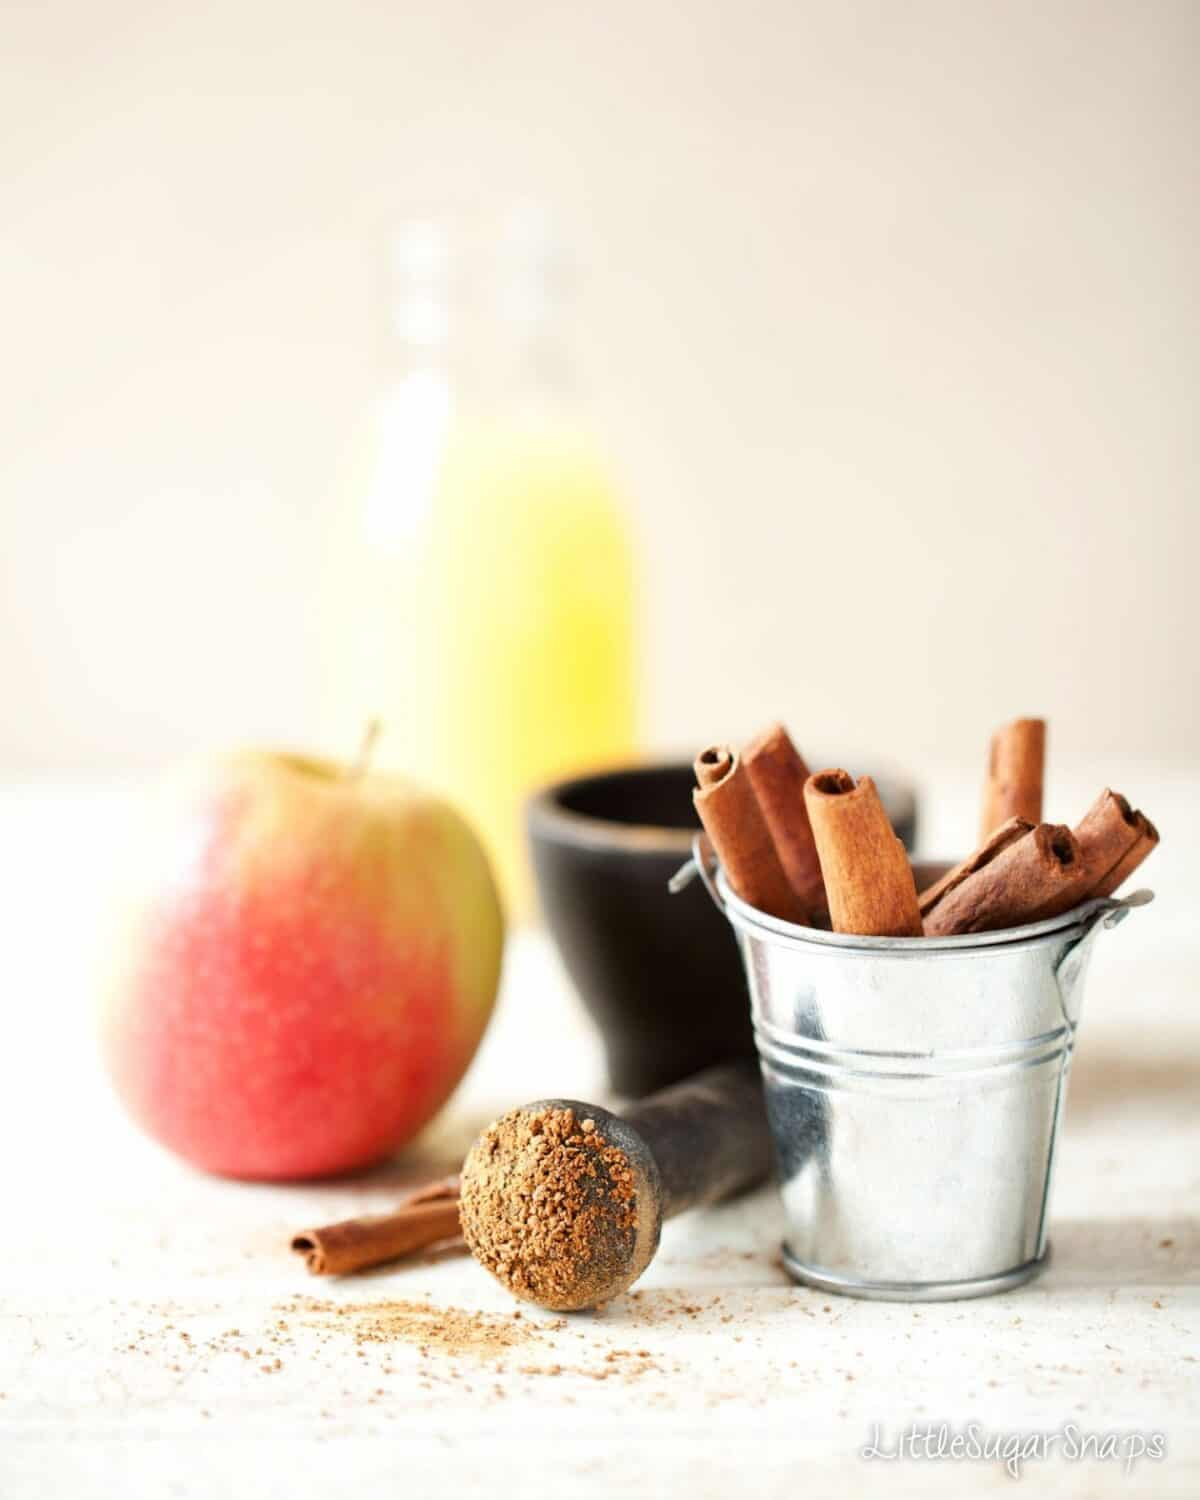 A small bucket of cinnamon sticks with ground cinnamon, apple and fruit juice